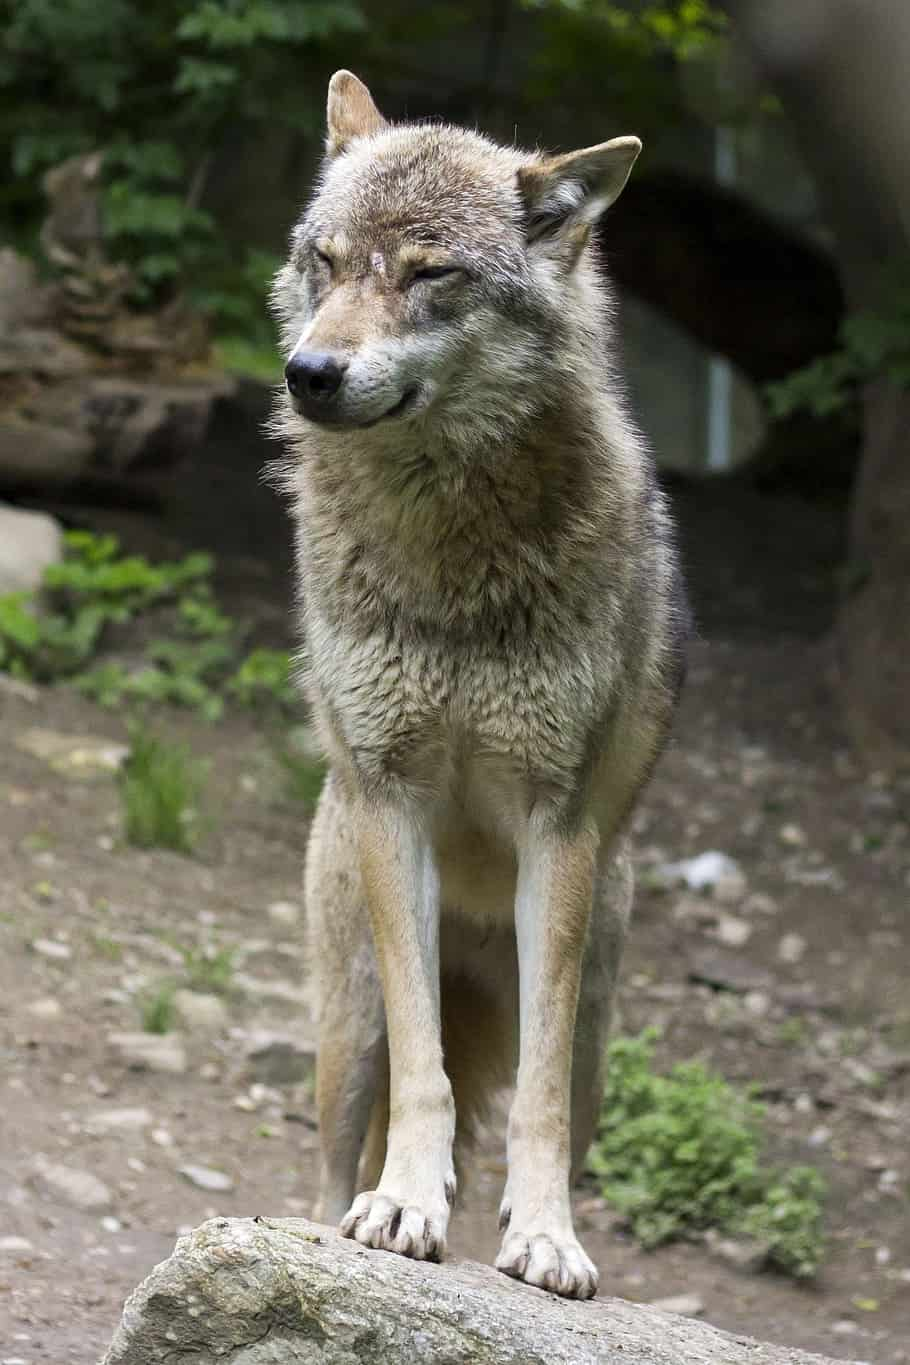 Is Gray wolf similar to a Dog?